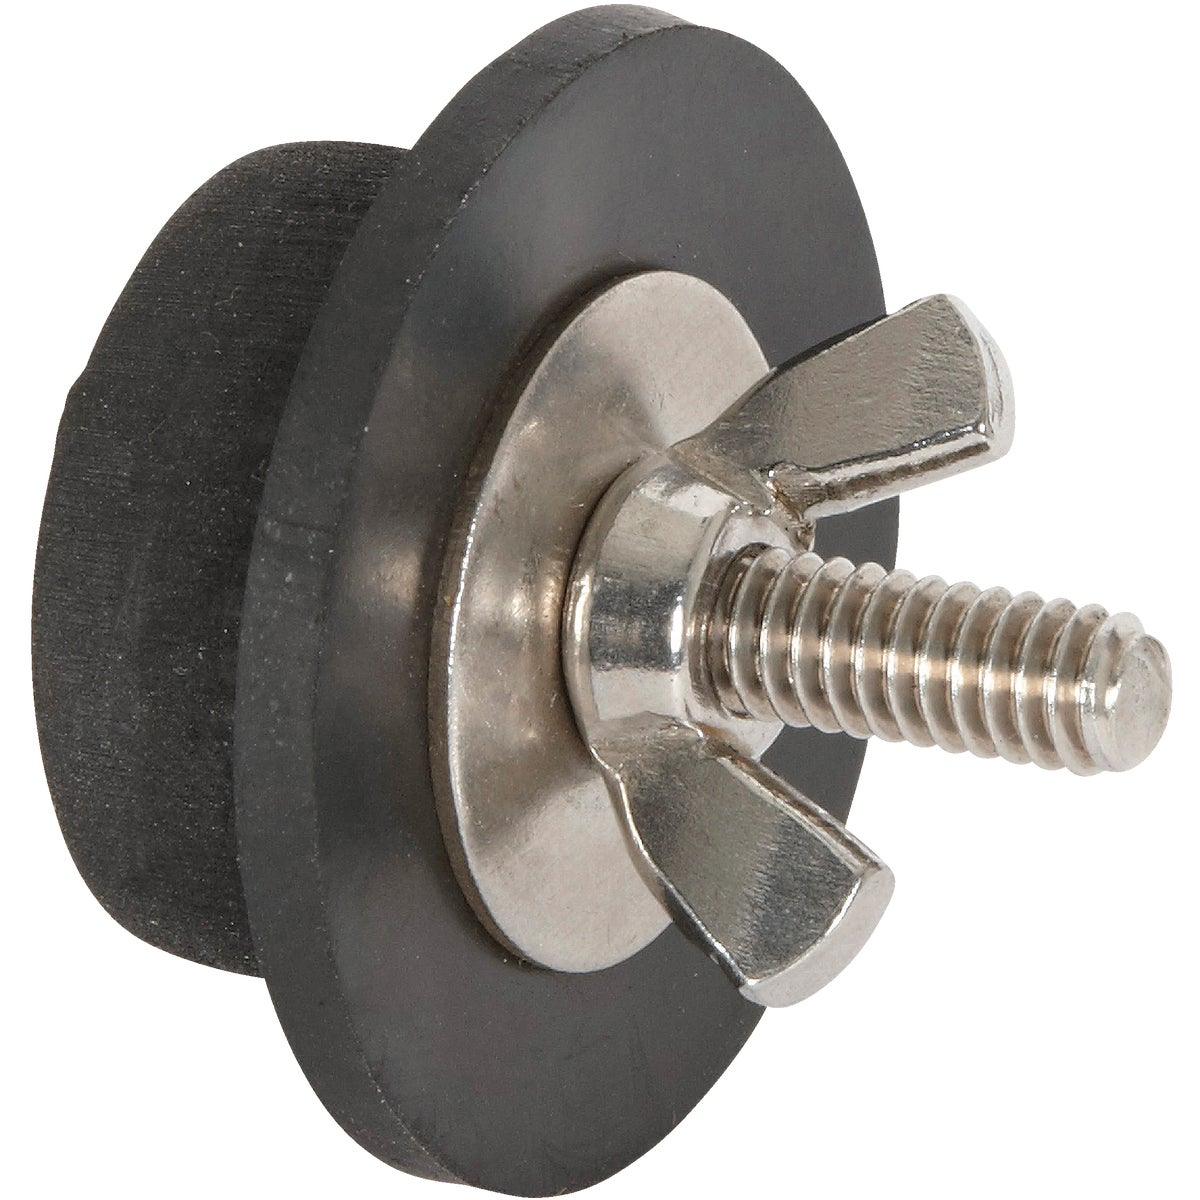 Item 703236, Replacement expansion plug for Precision Products poly lawn rollers. Refer to Model No.